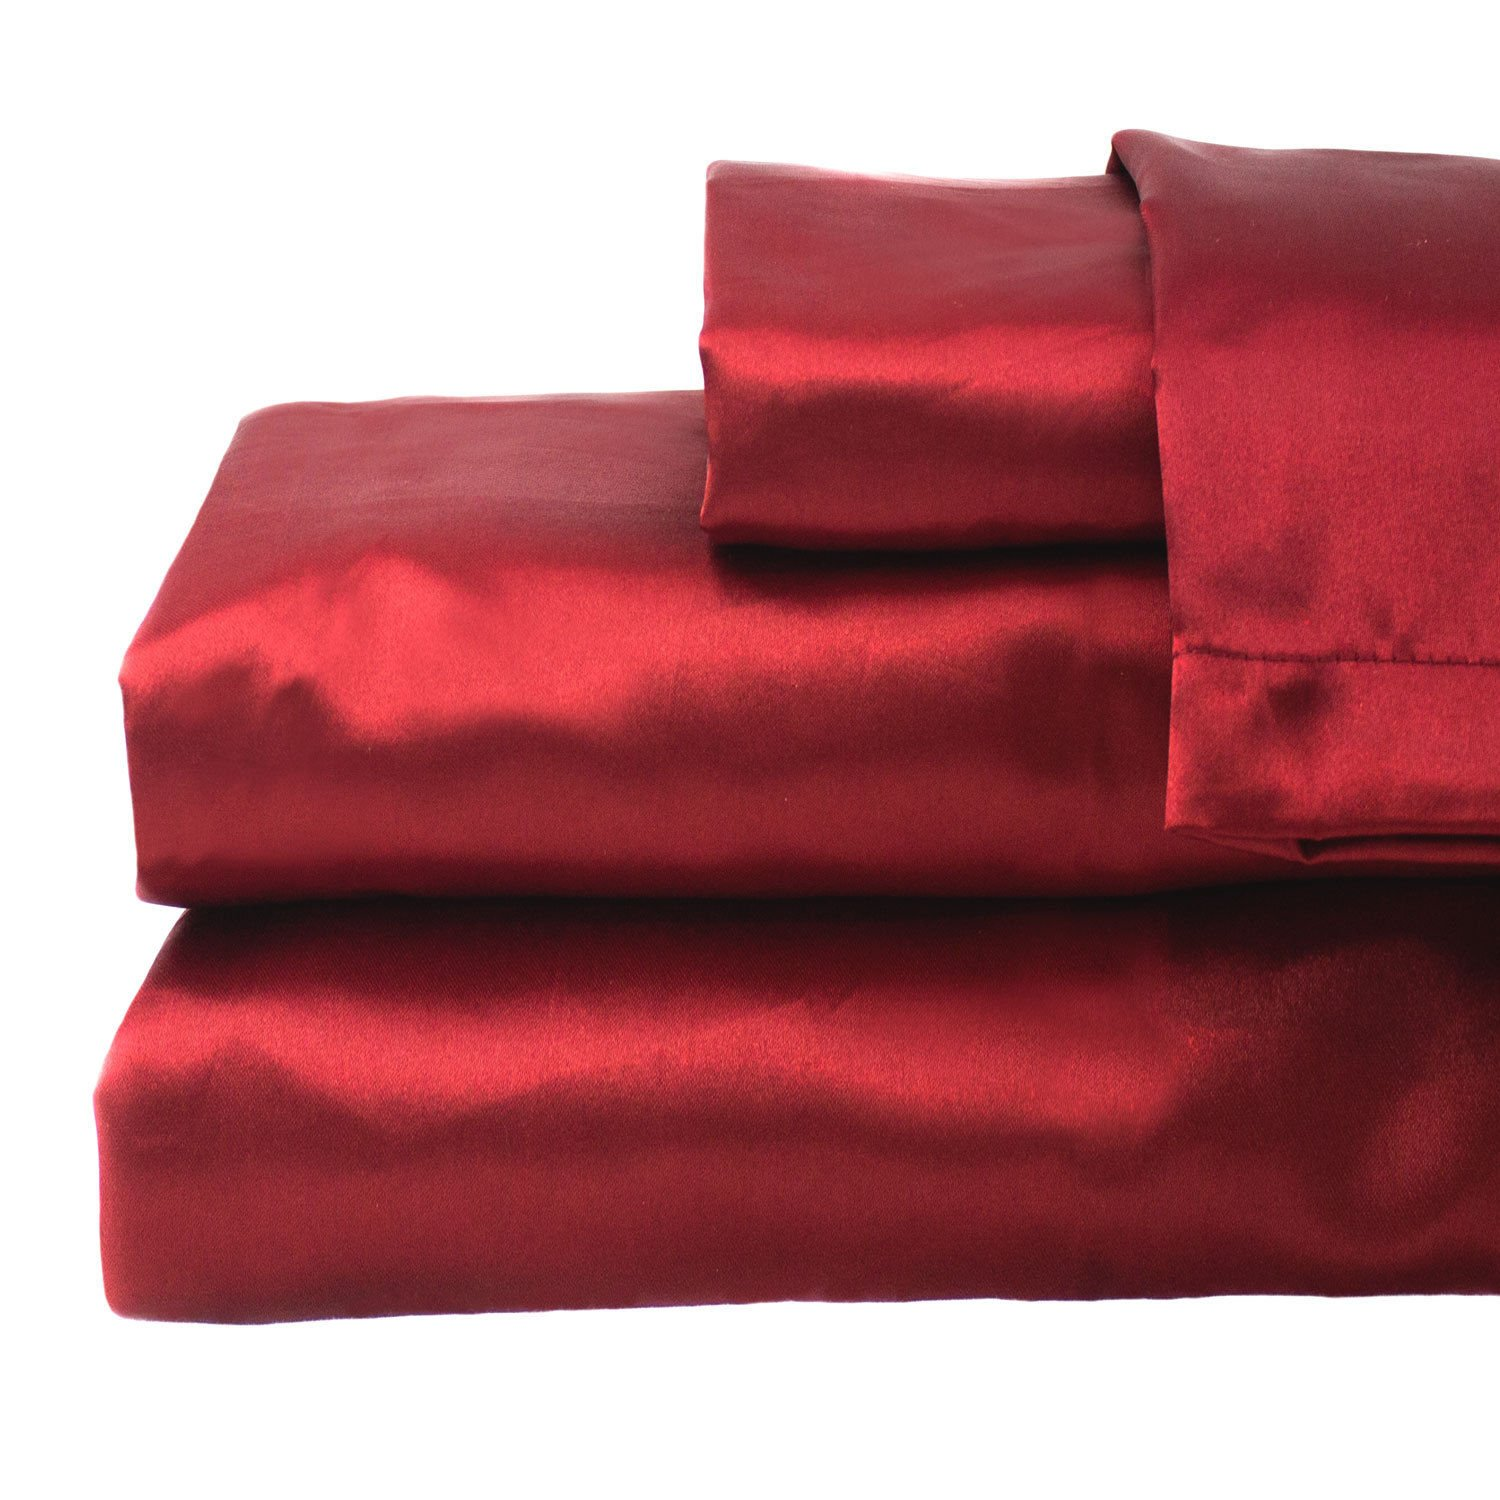 zry_dlifa Queen size Red Hotel Collection Satin Sheet Sets